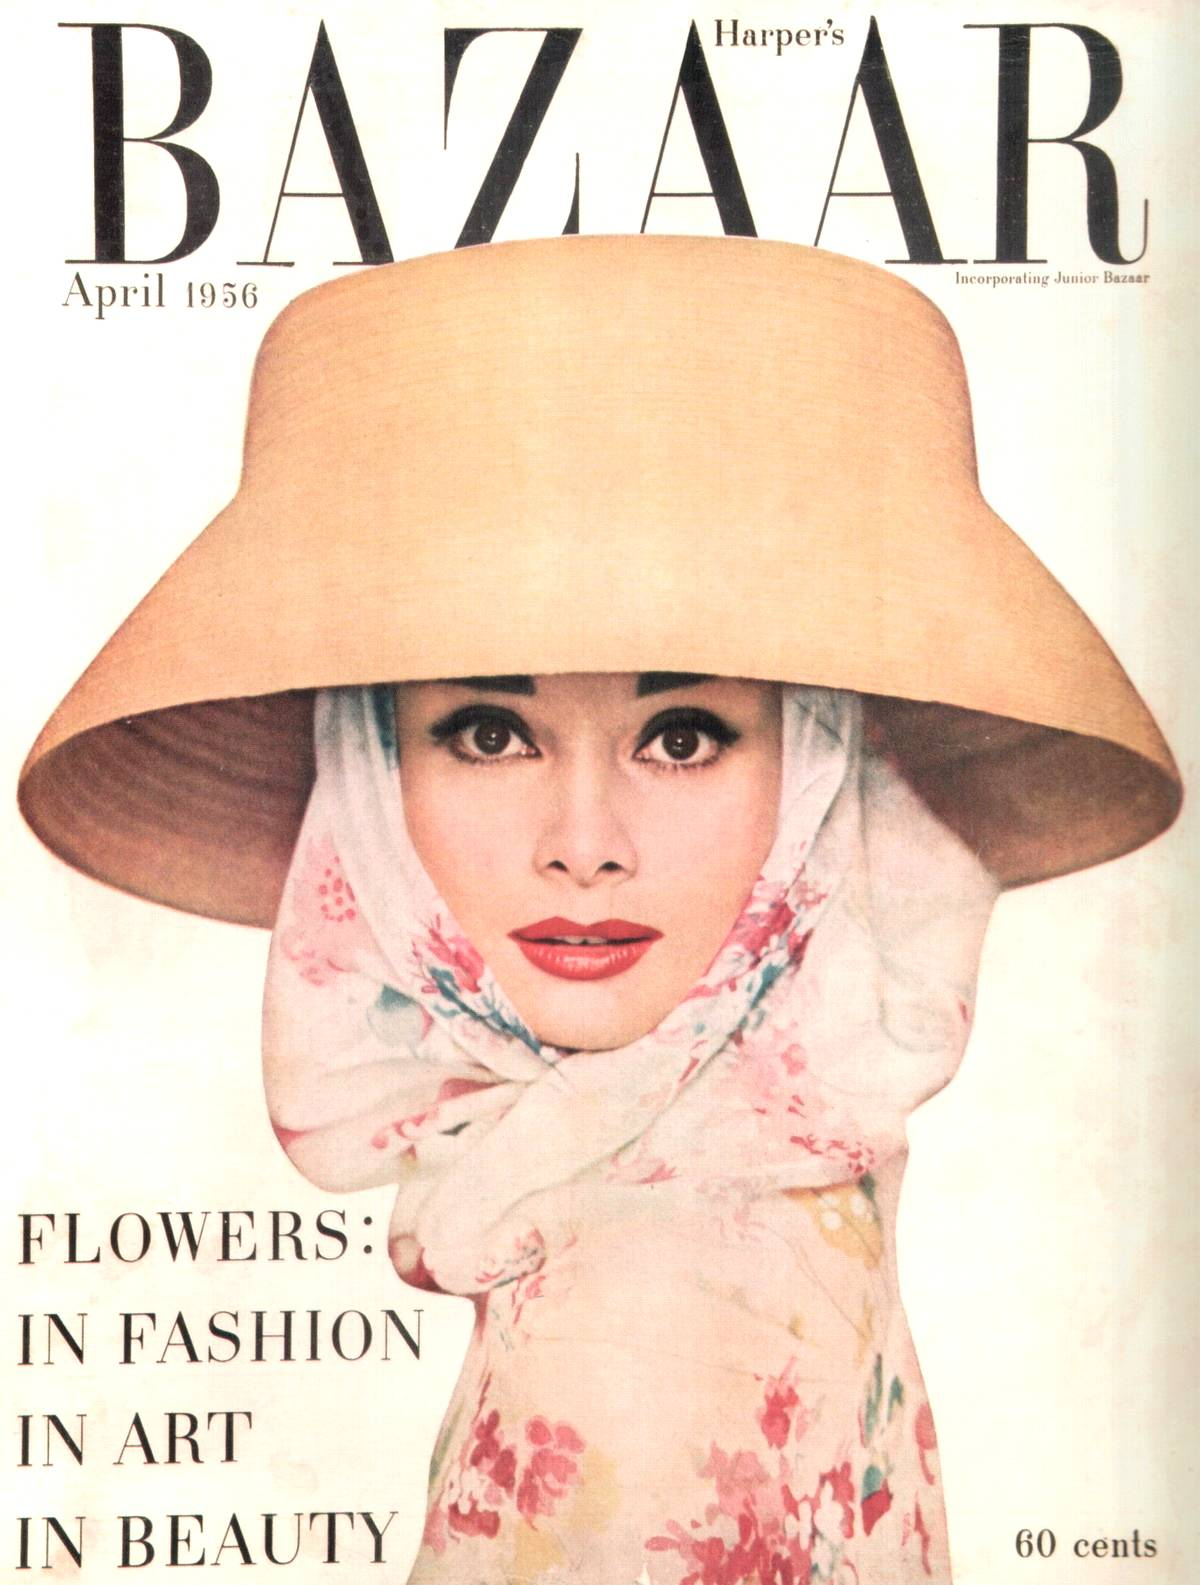 Audrey Hepburn (with big lips) covering 1950s Harpers Bazaar